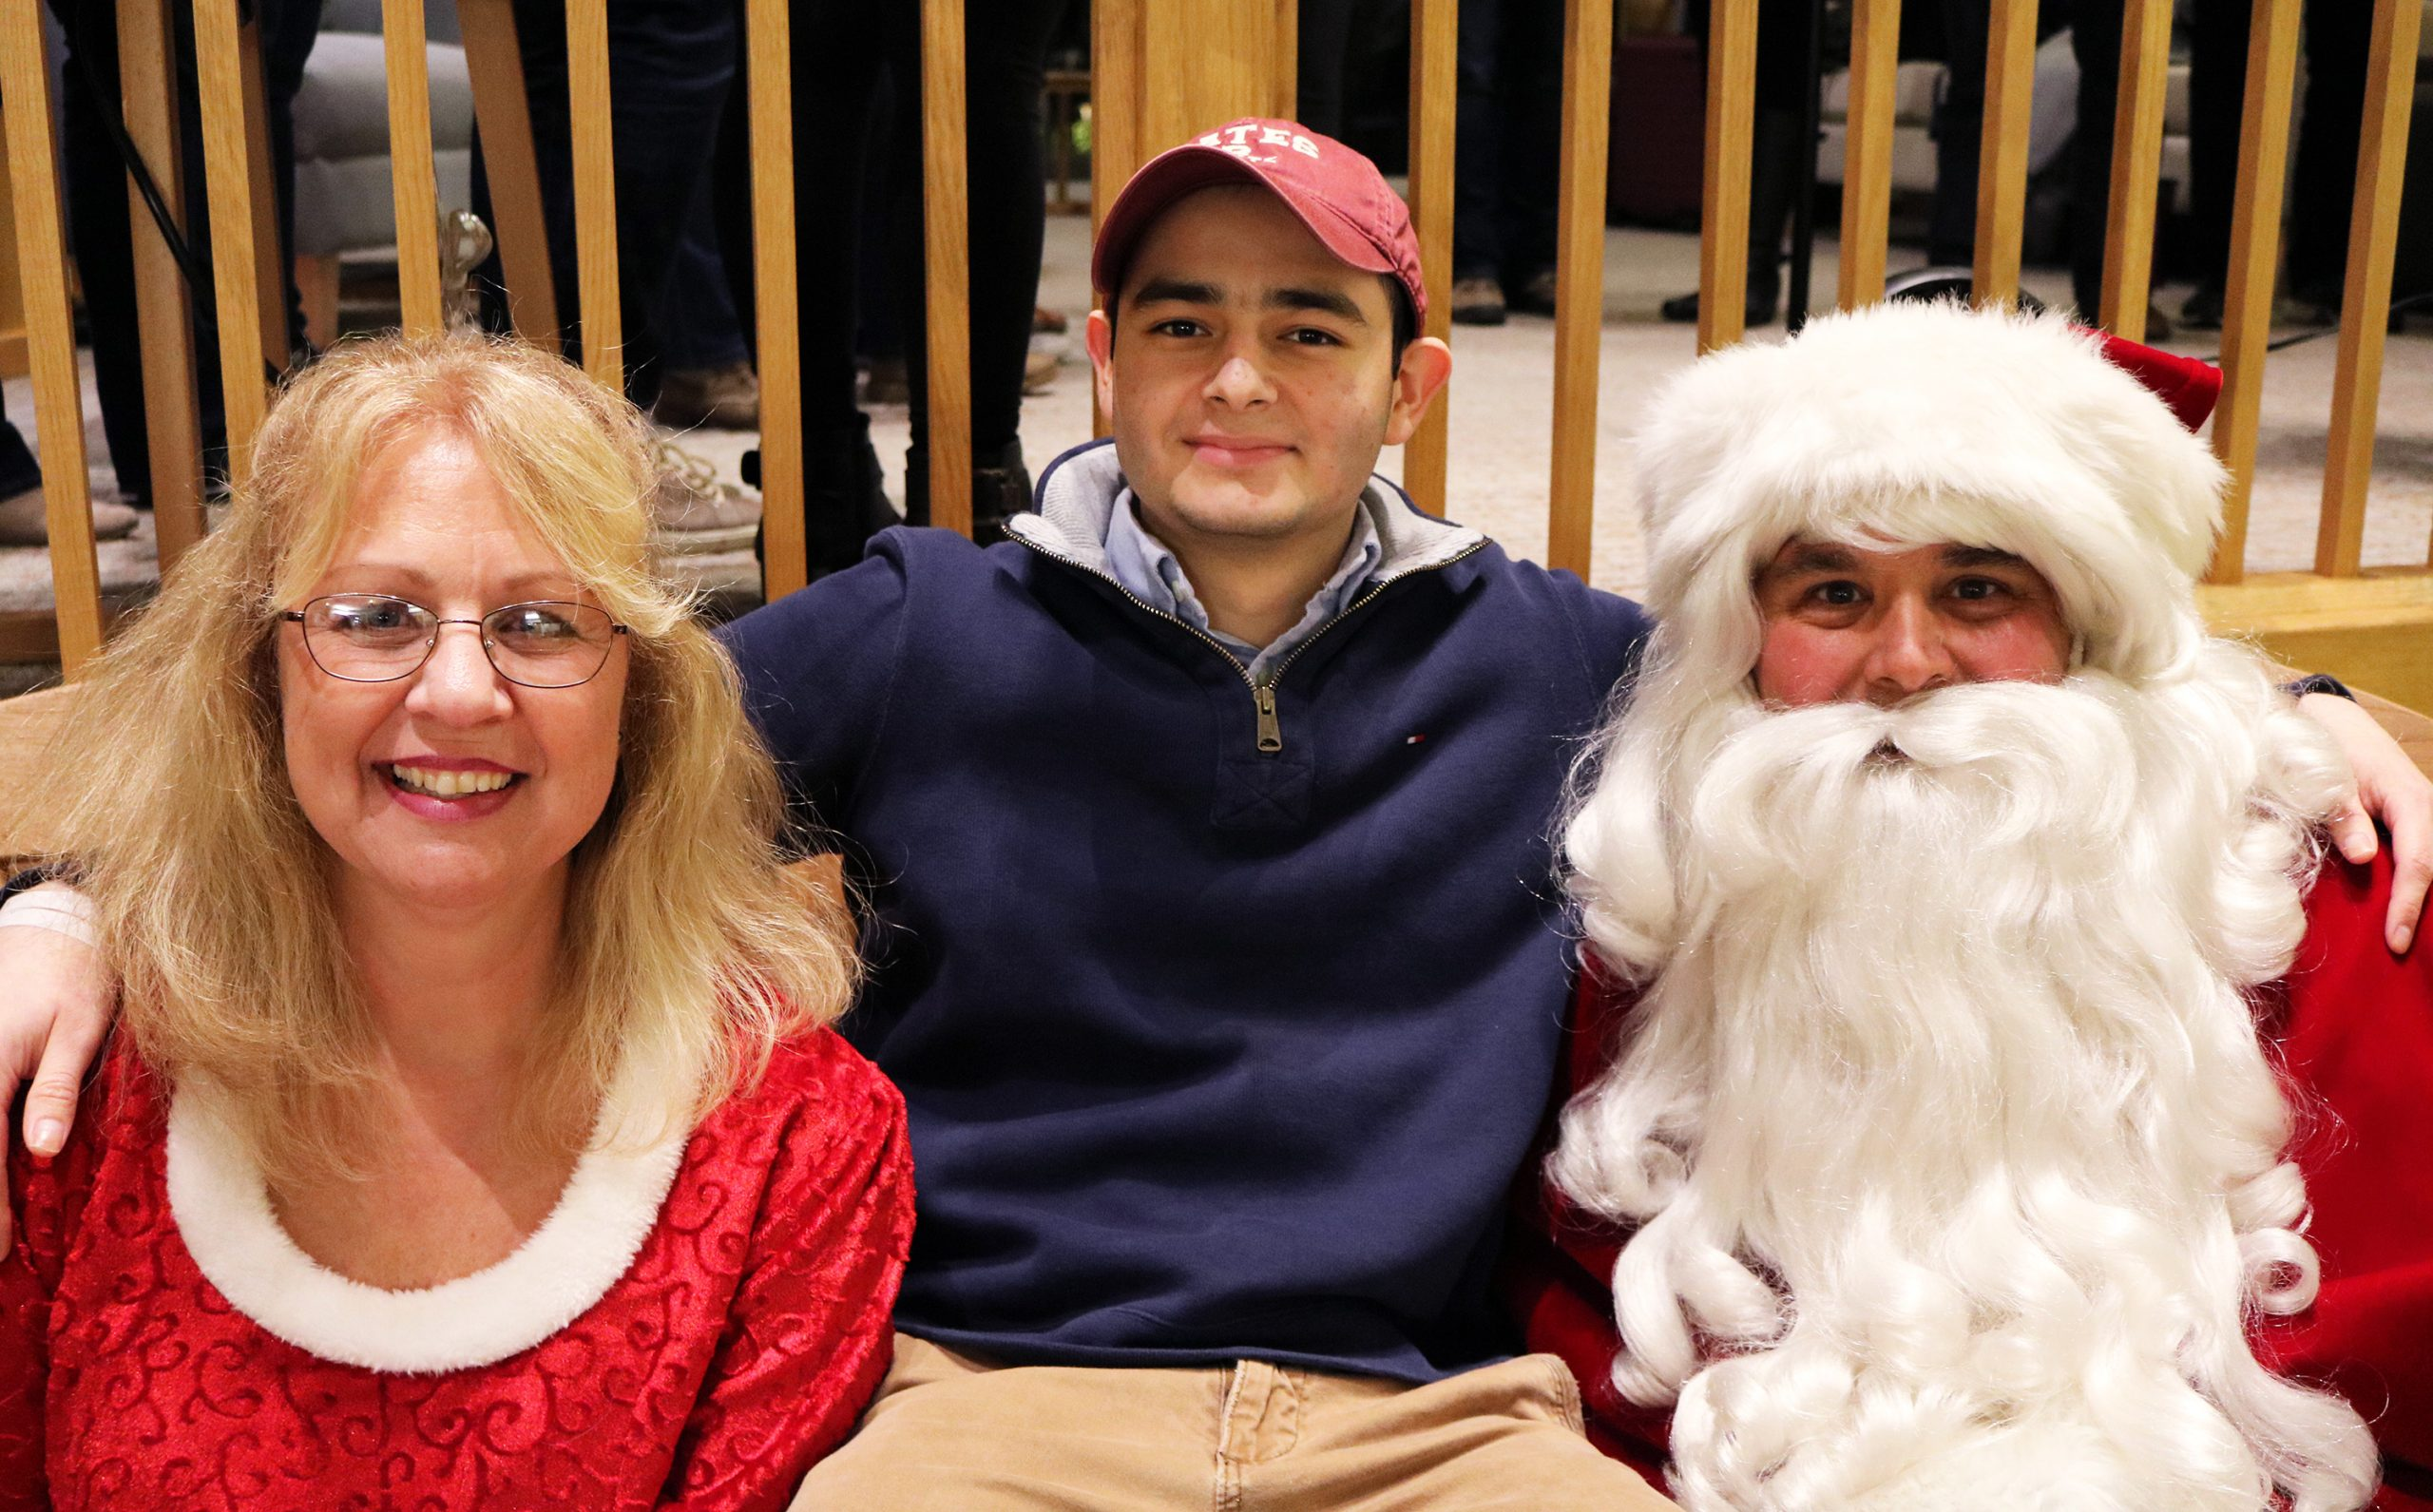 Andreas with Santa Clause and Mrs. Clause